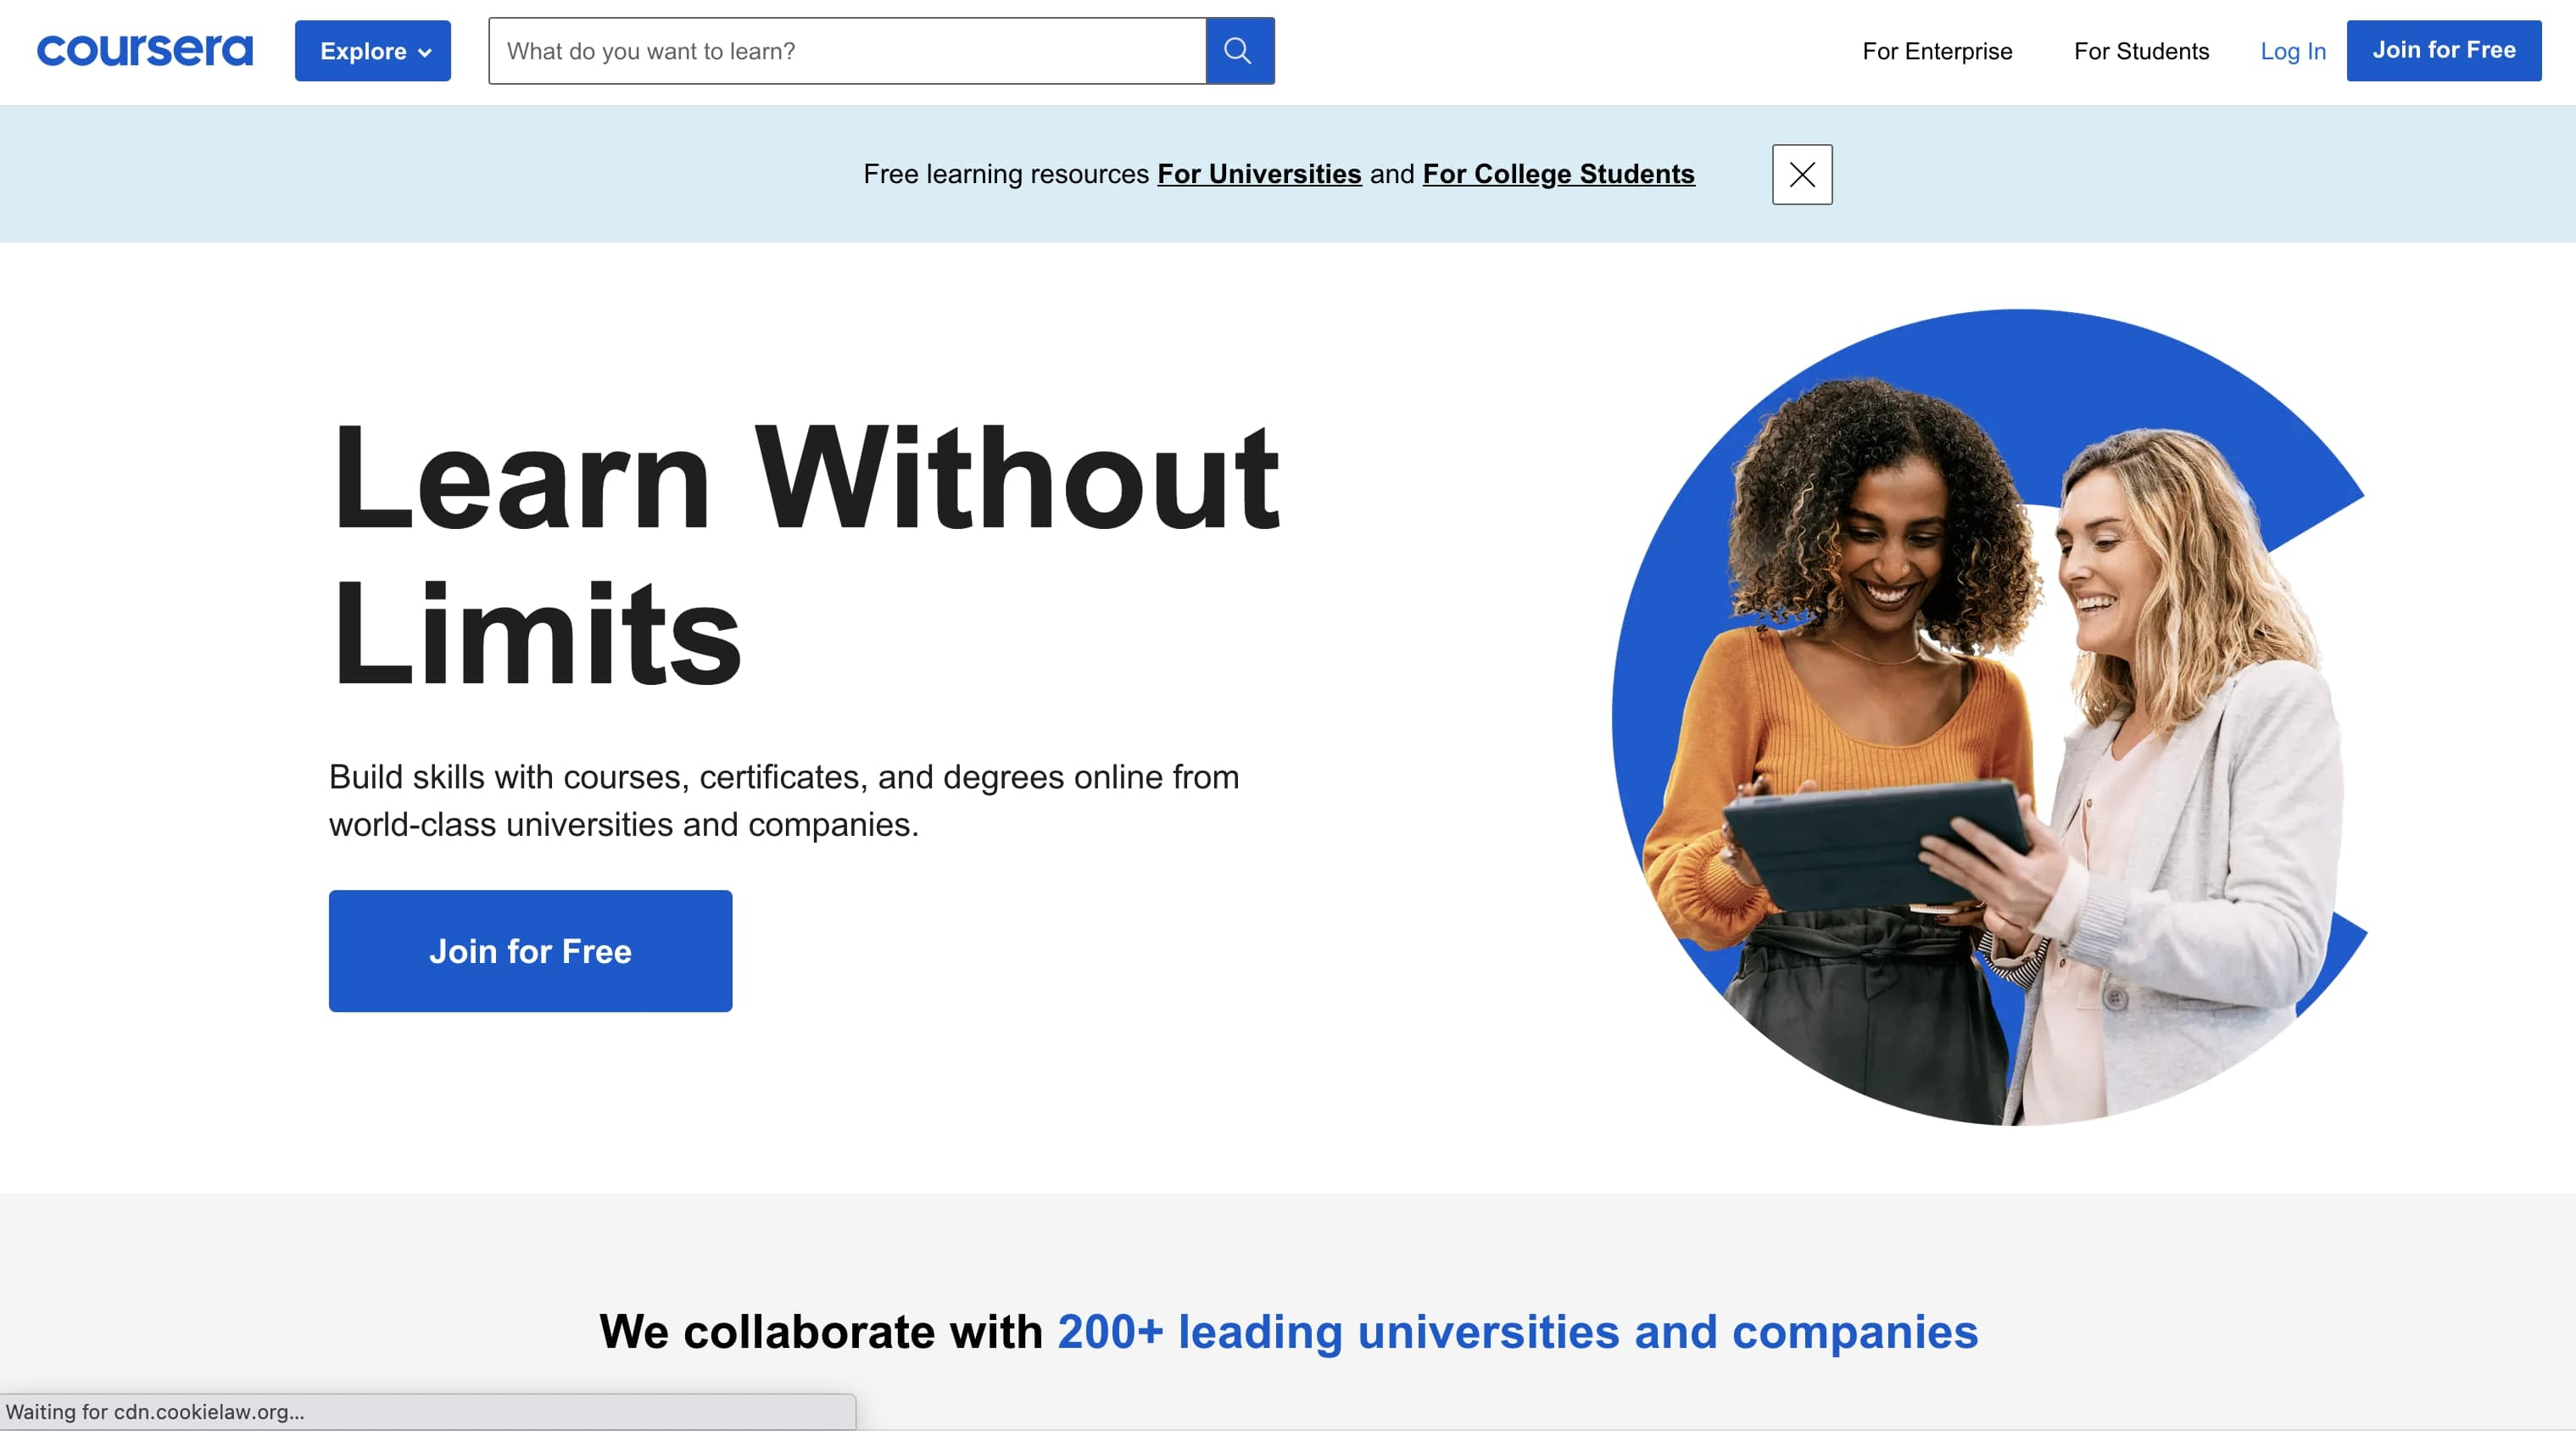 An image of the Coursera website.